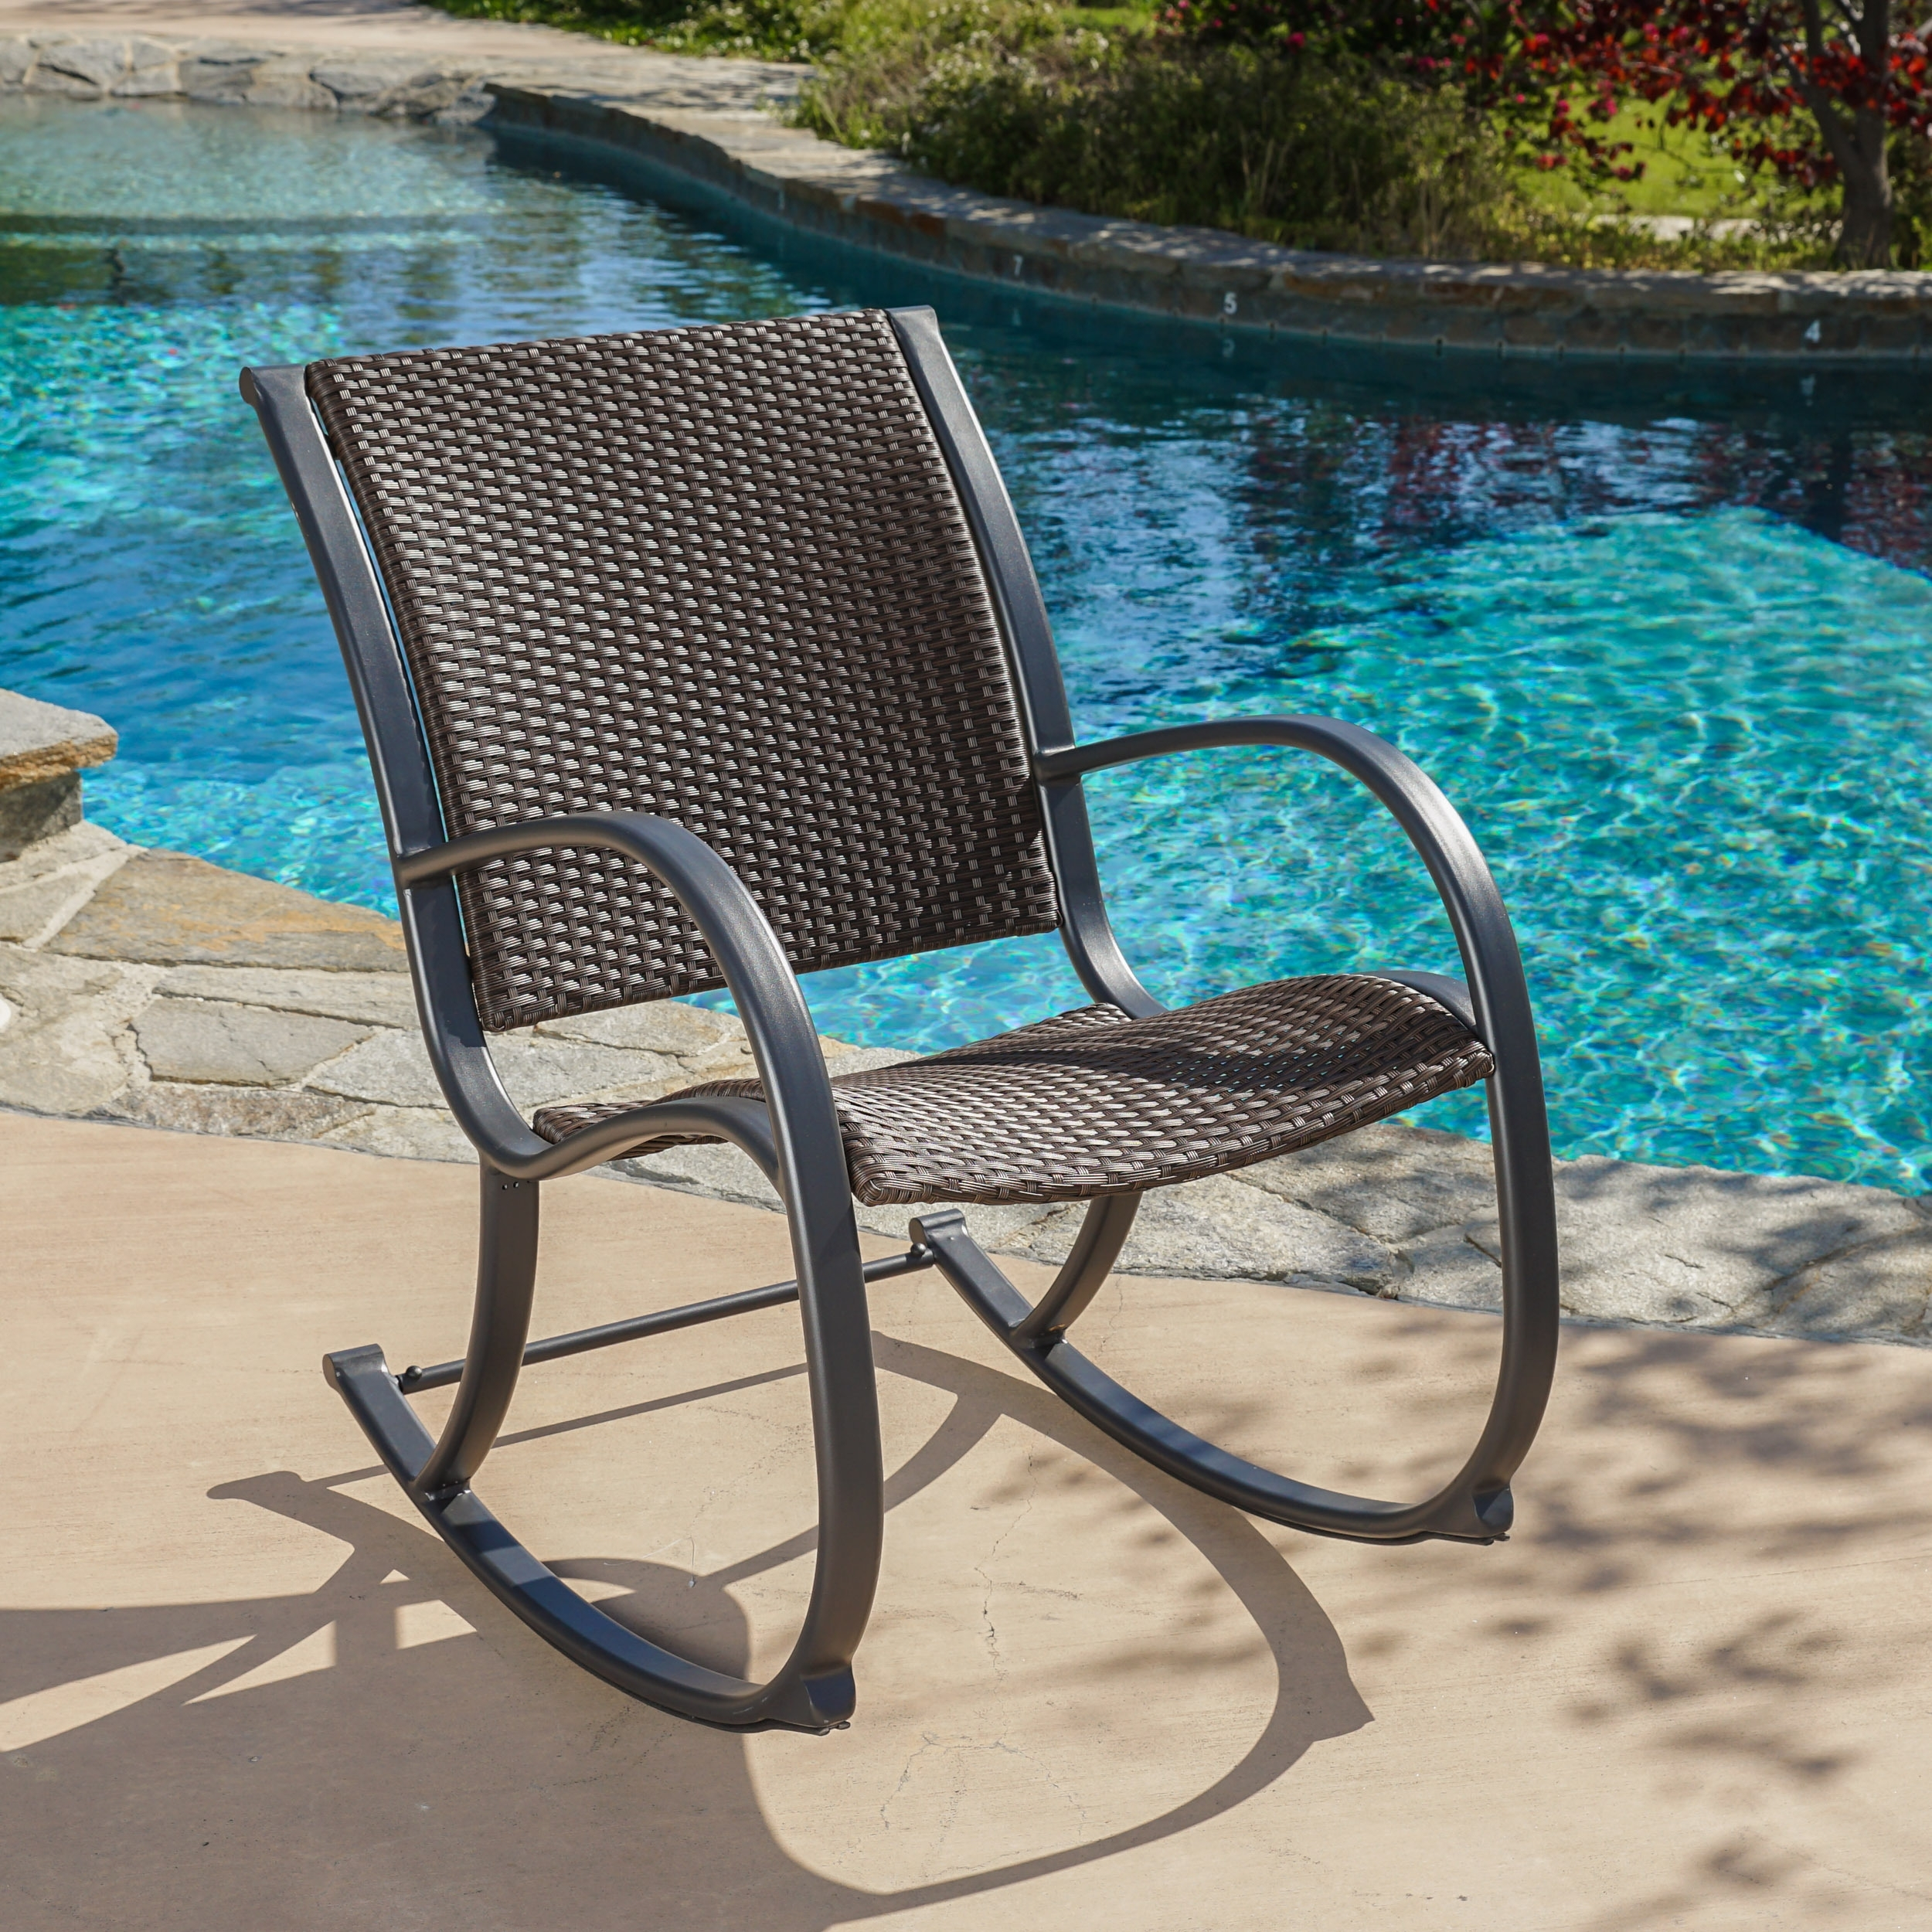 Shop Gracie's Outdoor Wicker Rocking Chairchristopher Knight Intended For Rattan Outdoor Rocking Chairs (View 11 of 15)